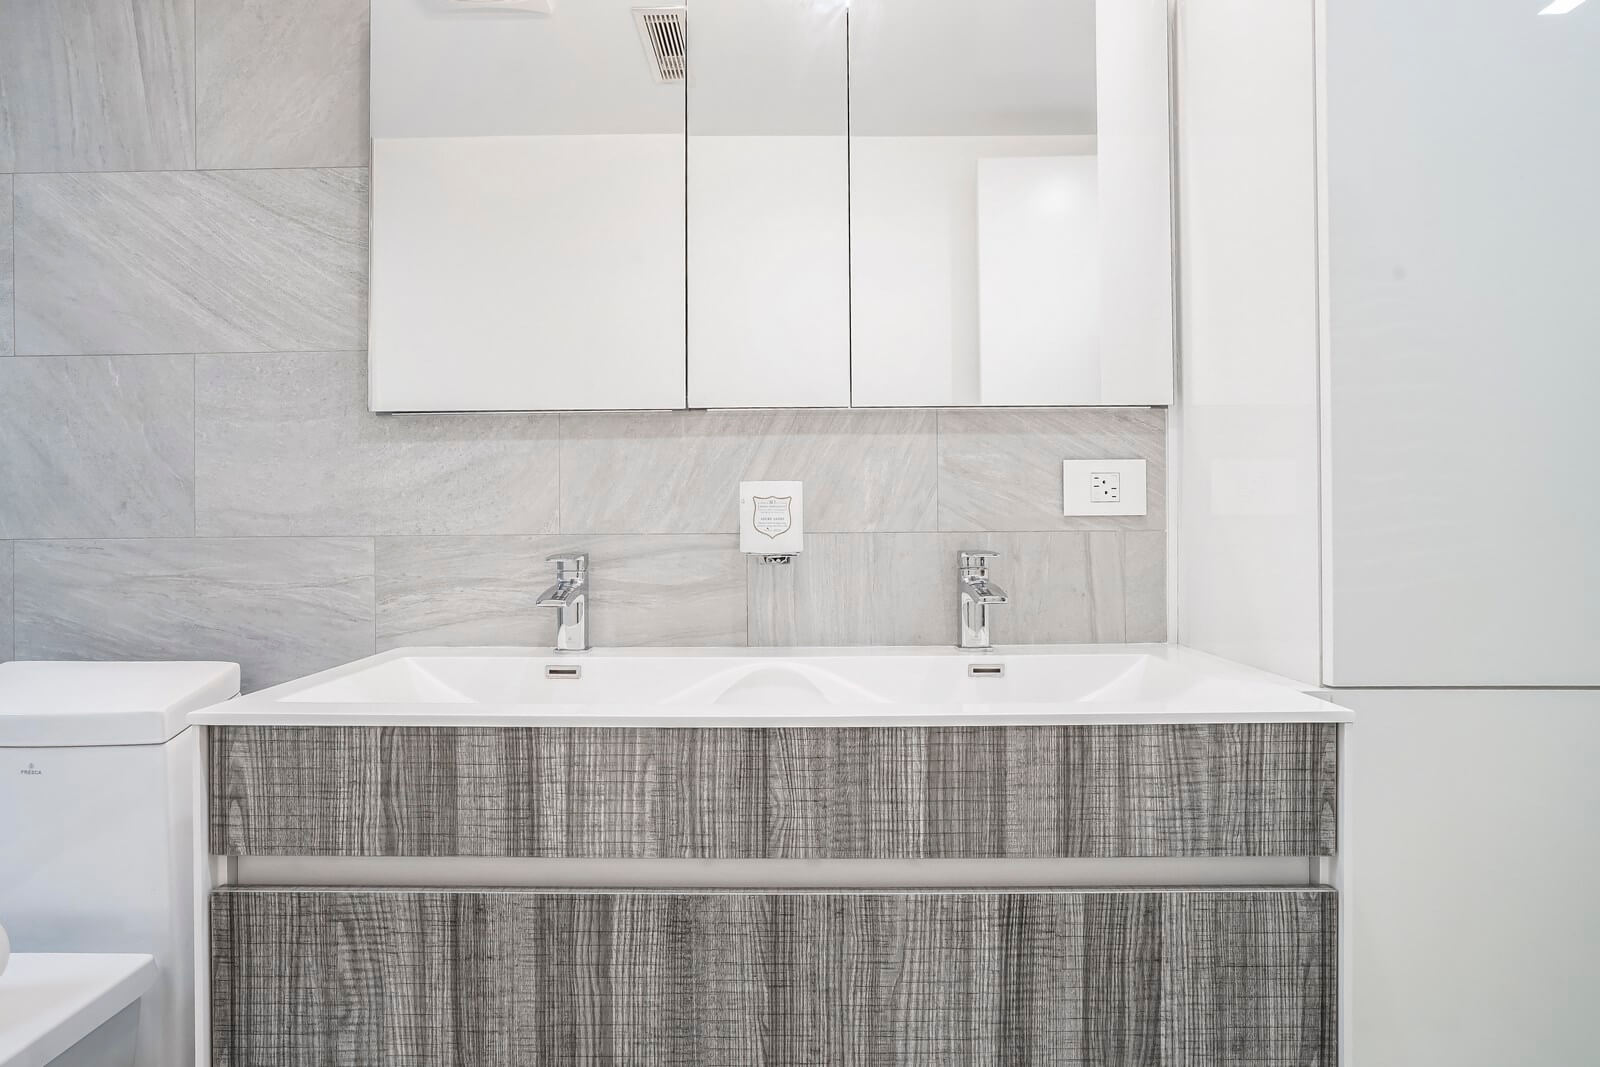 This bathroom area is equipped with contemporary sanitary engineering and stylish furniture pieces, including countertops and vanities. The walls are finished with nice-looking large tiles. Several wall-mounted power socket make the bathroom very comfortable and fully functional. The bathroom is decorated mostly in white and gray colors and their shades, which perfectly harmonize with each other, creating a welcoming, warm and cozy atmosphere in the bathroom. Don't hesitate to make your bathroom as fully functional and attractive as this one in the photo with our top interior designers!